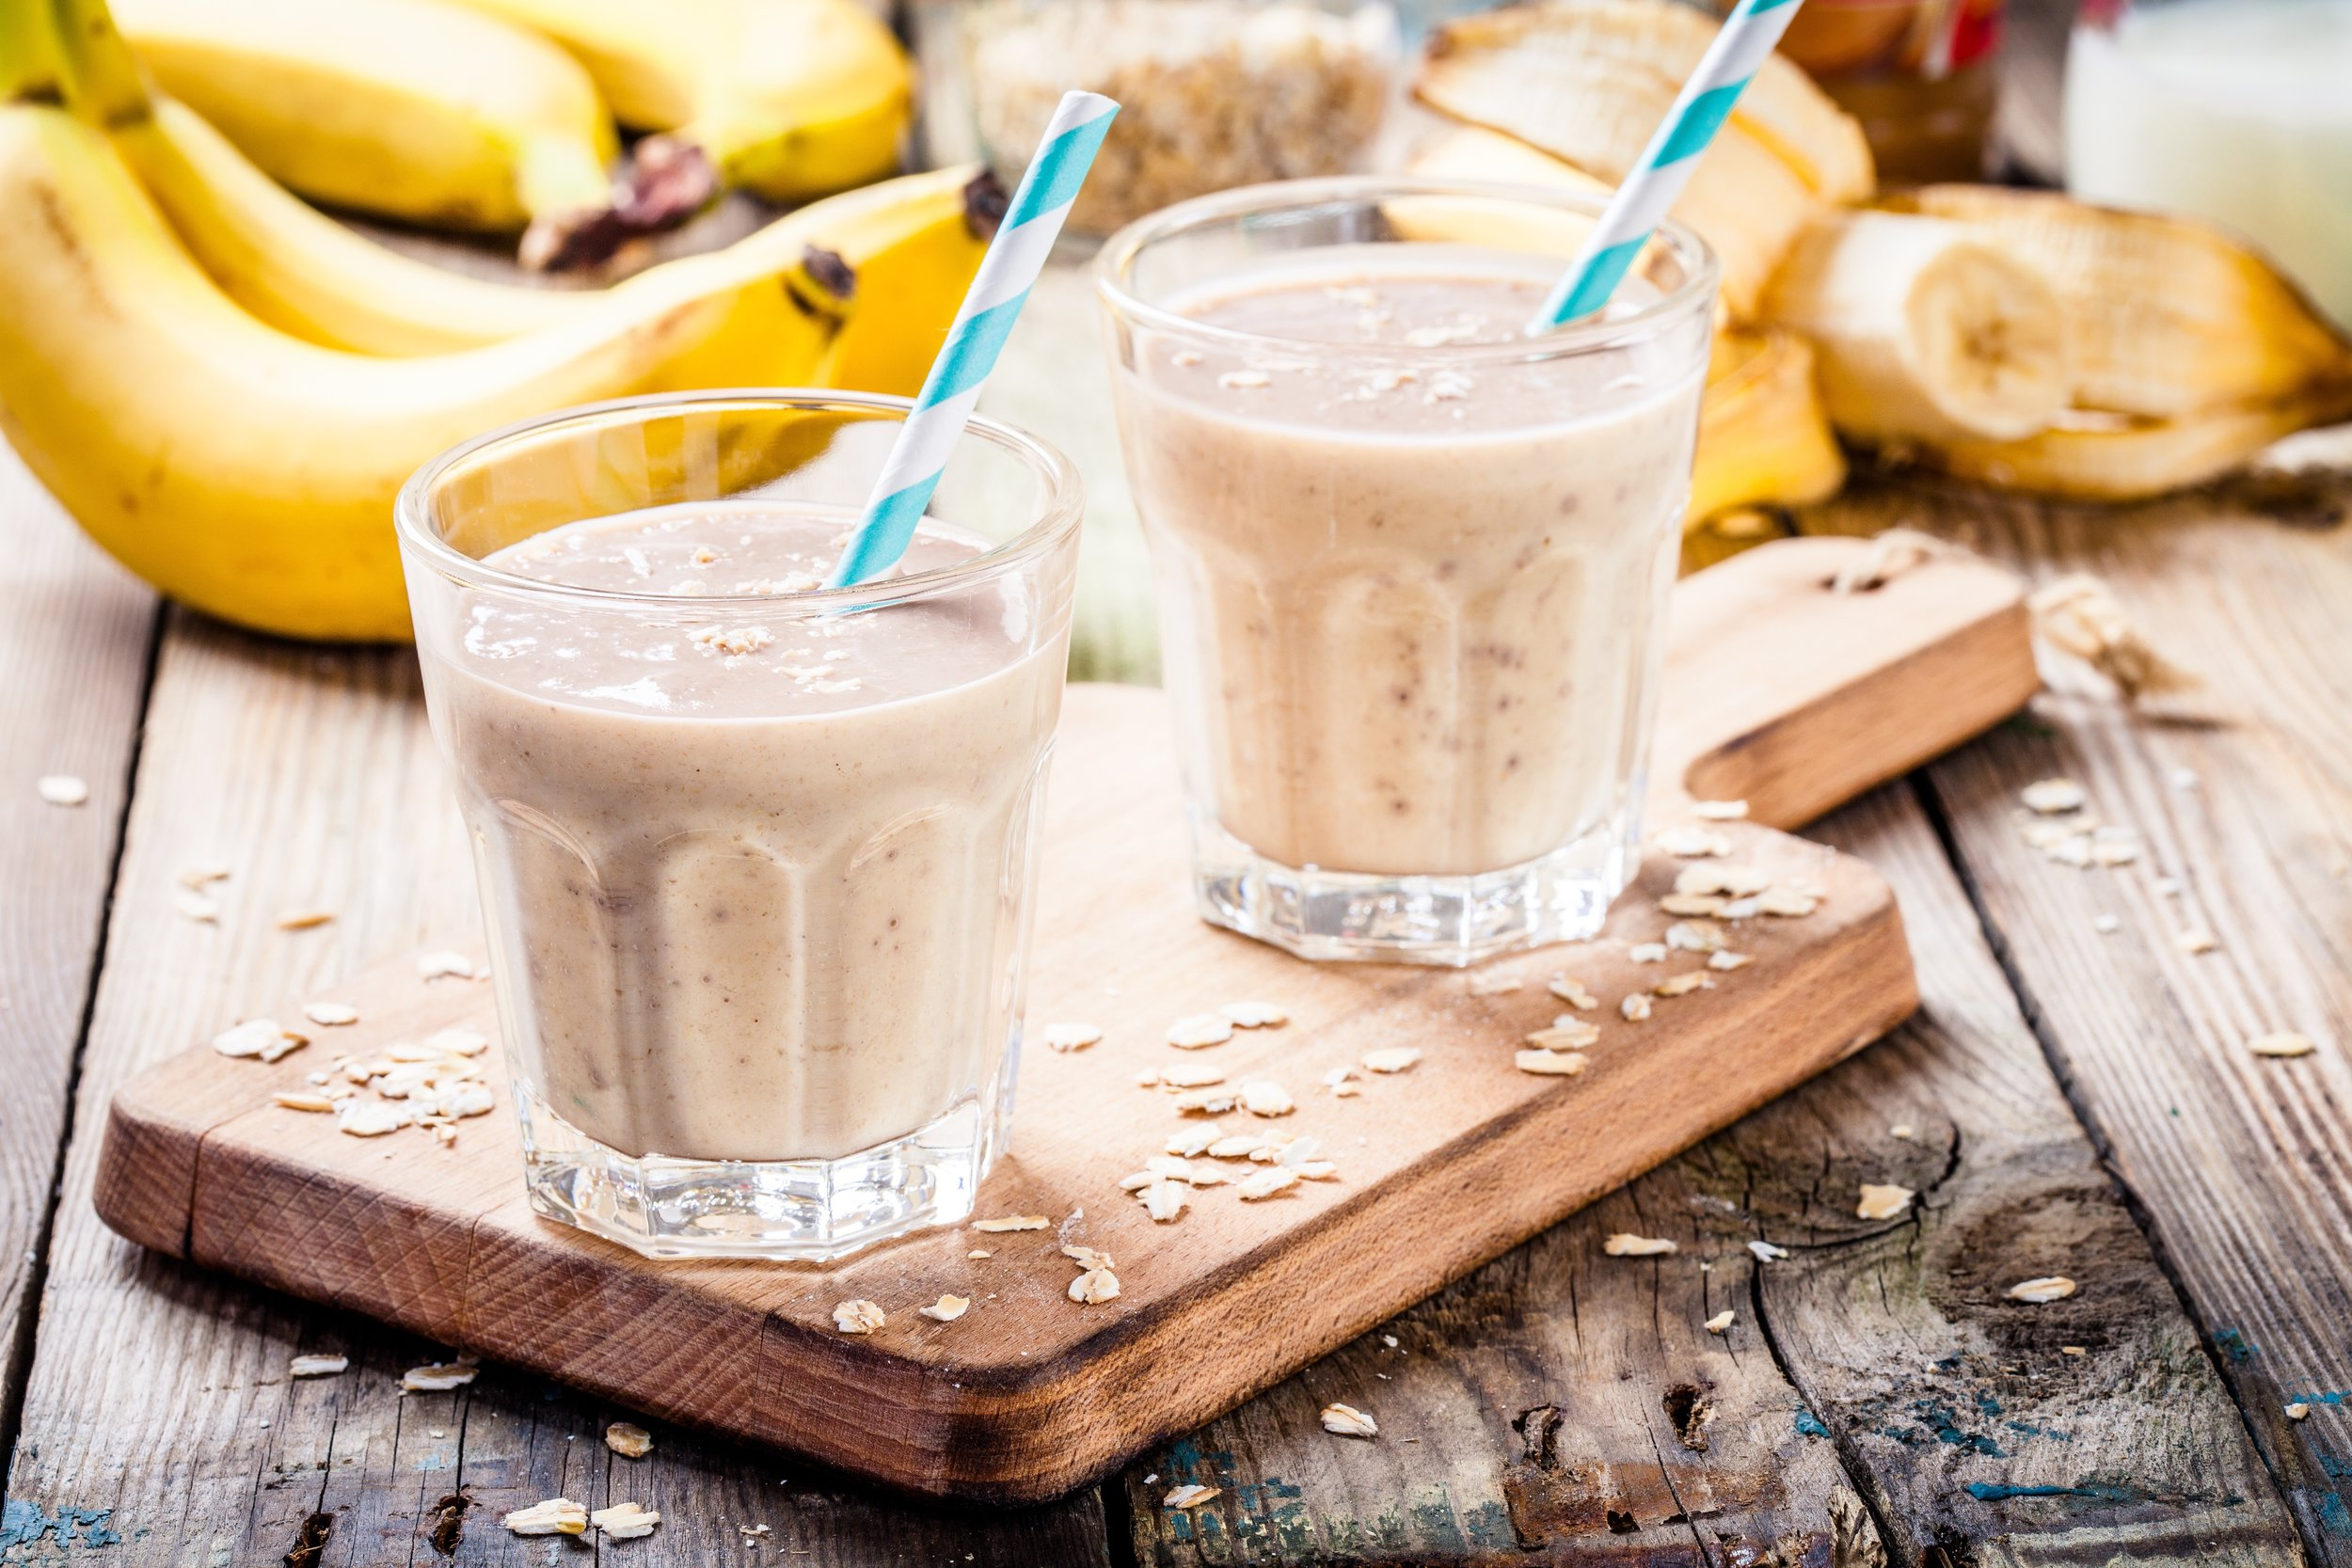 banana-smoothie-with-oatmeal-peanut-butter-and-P89JRF3.jpg